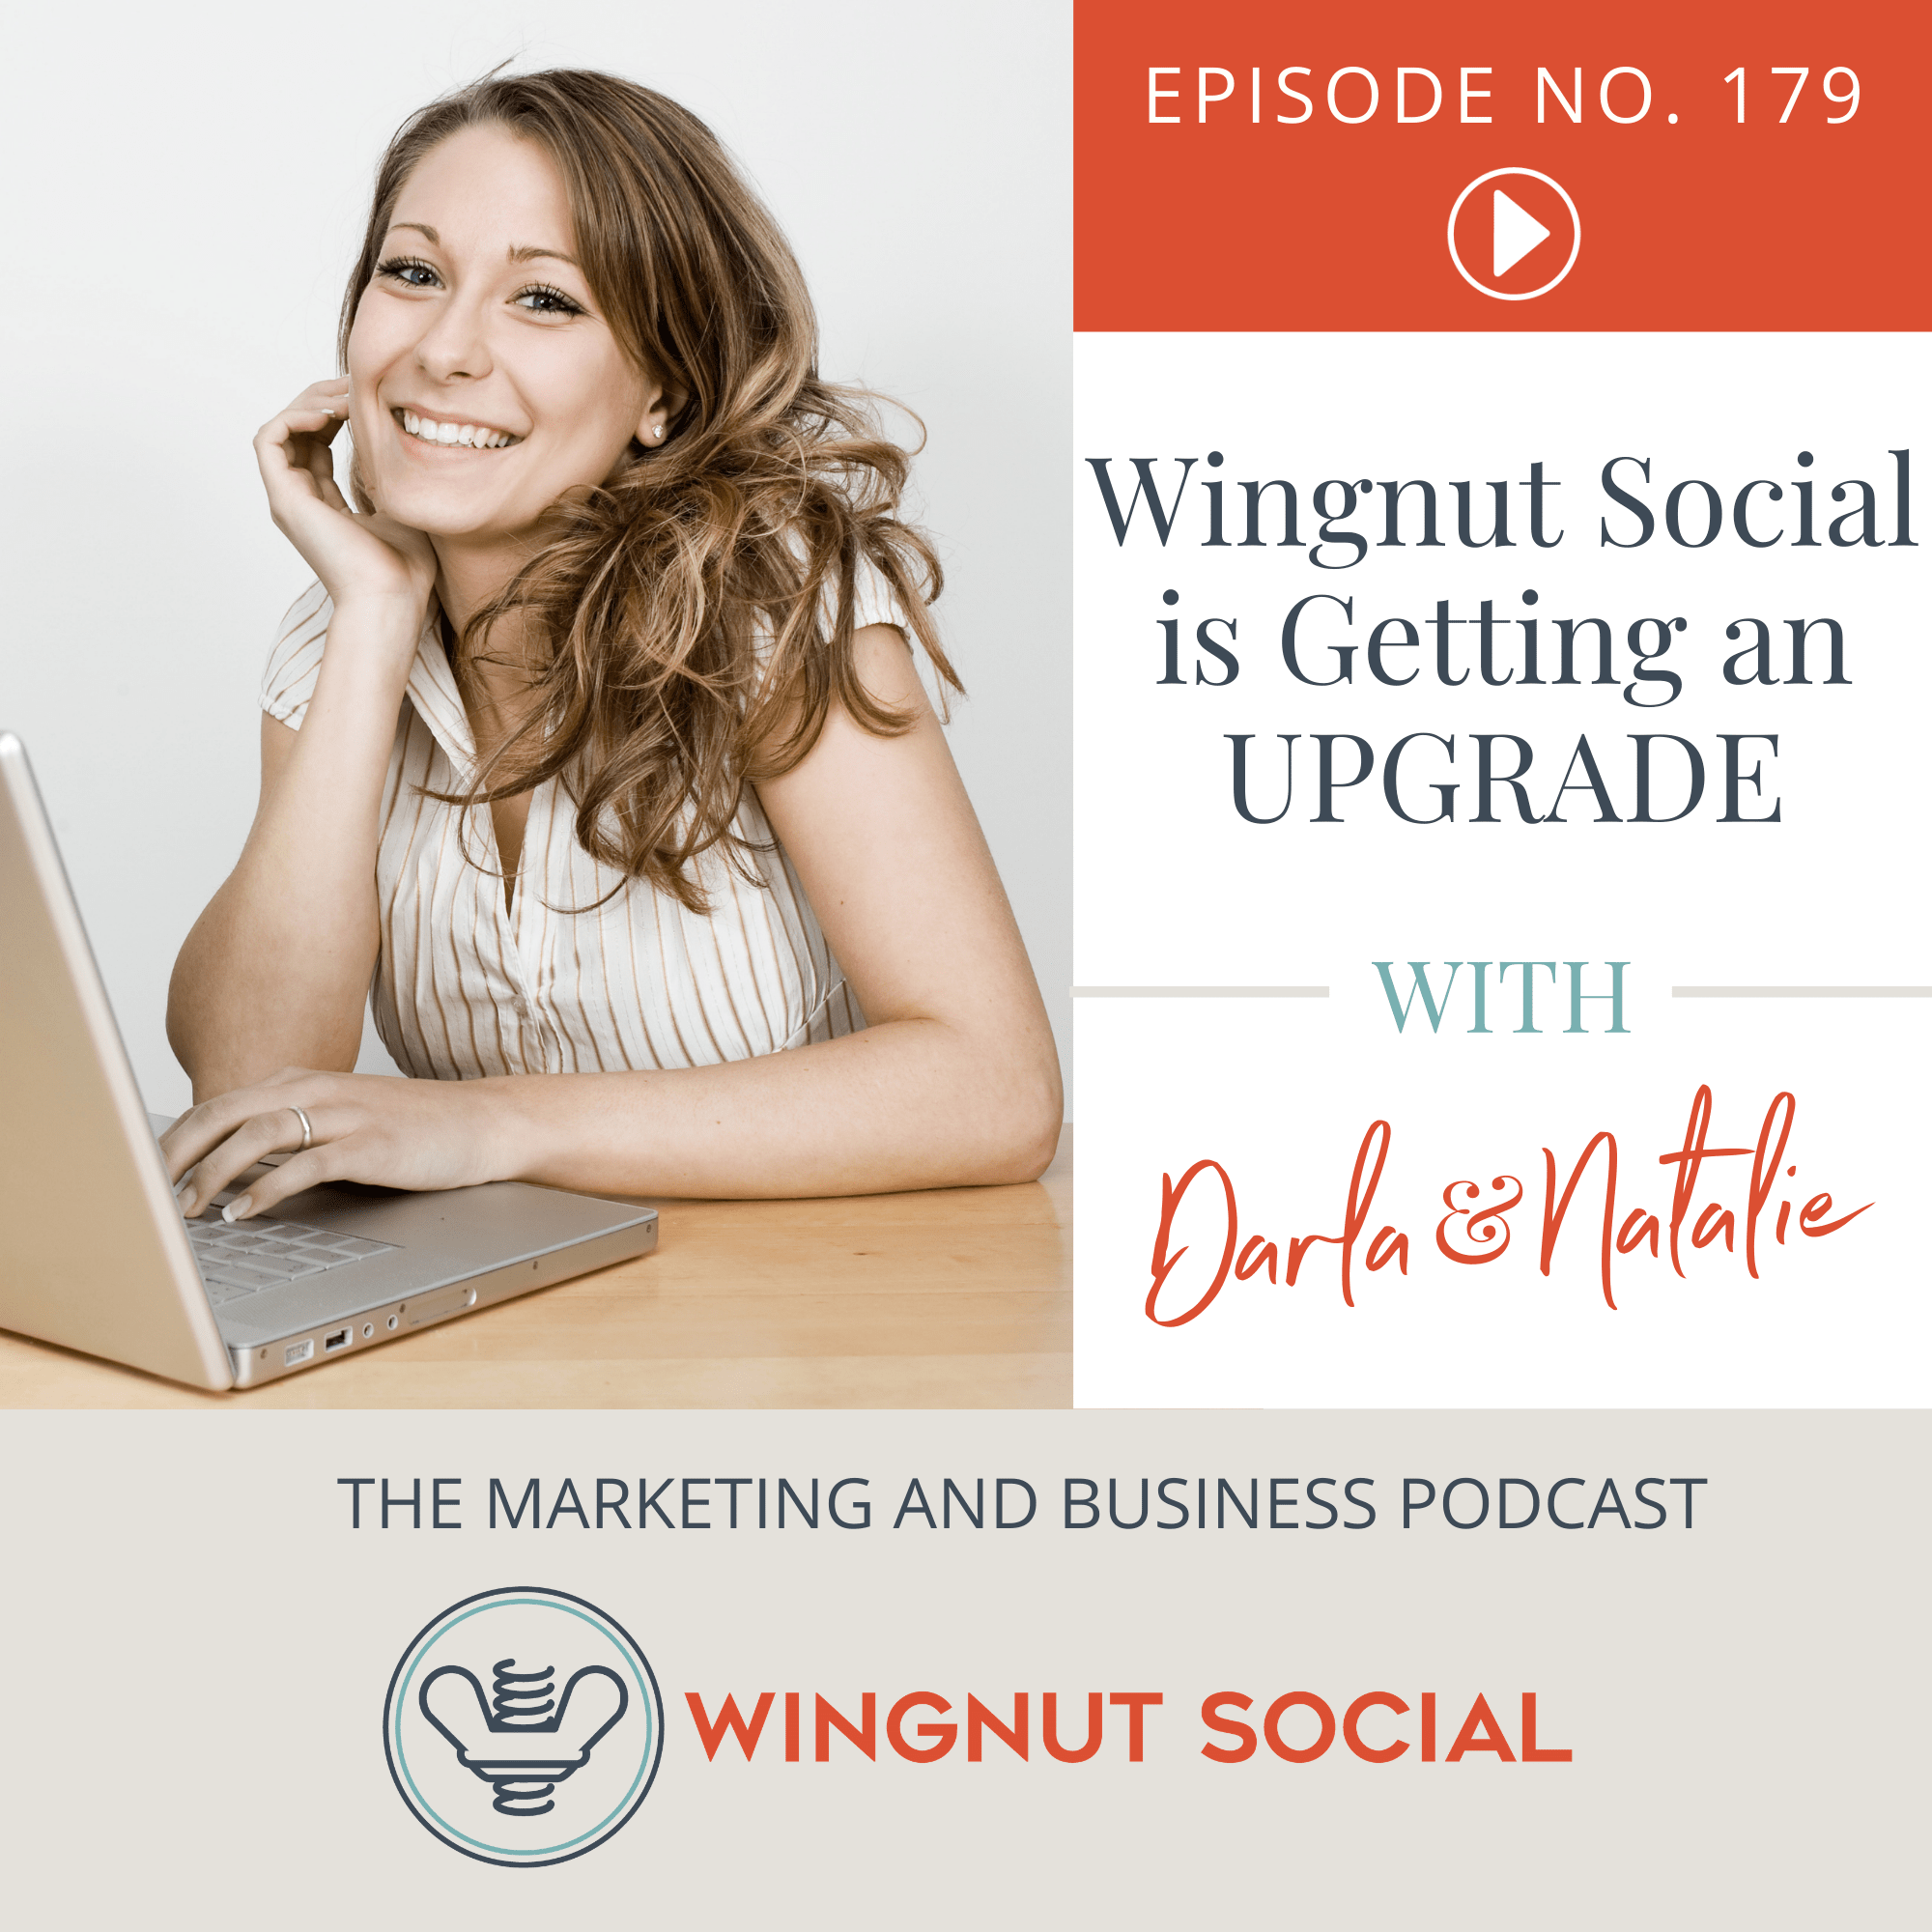 Wingnut Social is Getting an UPGRADE - Episode 179